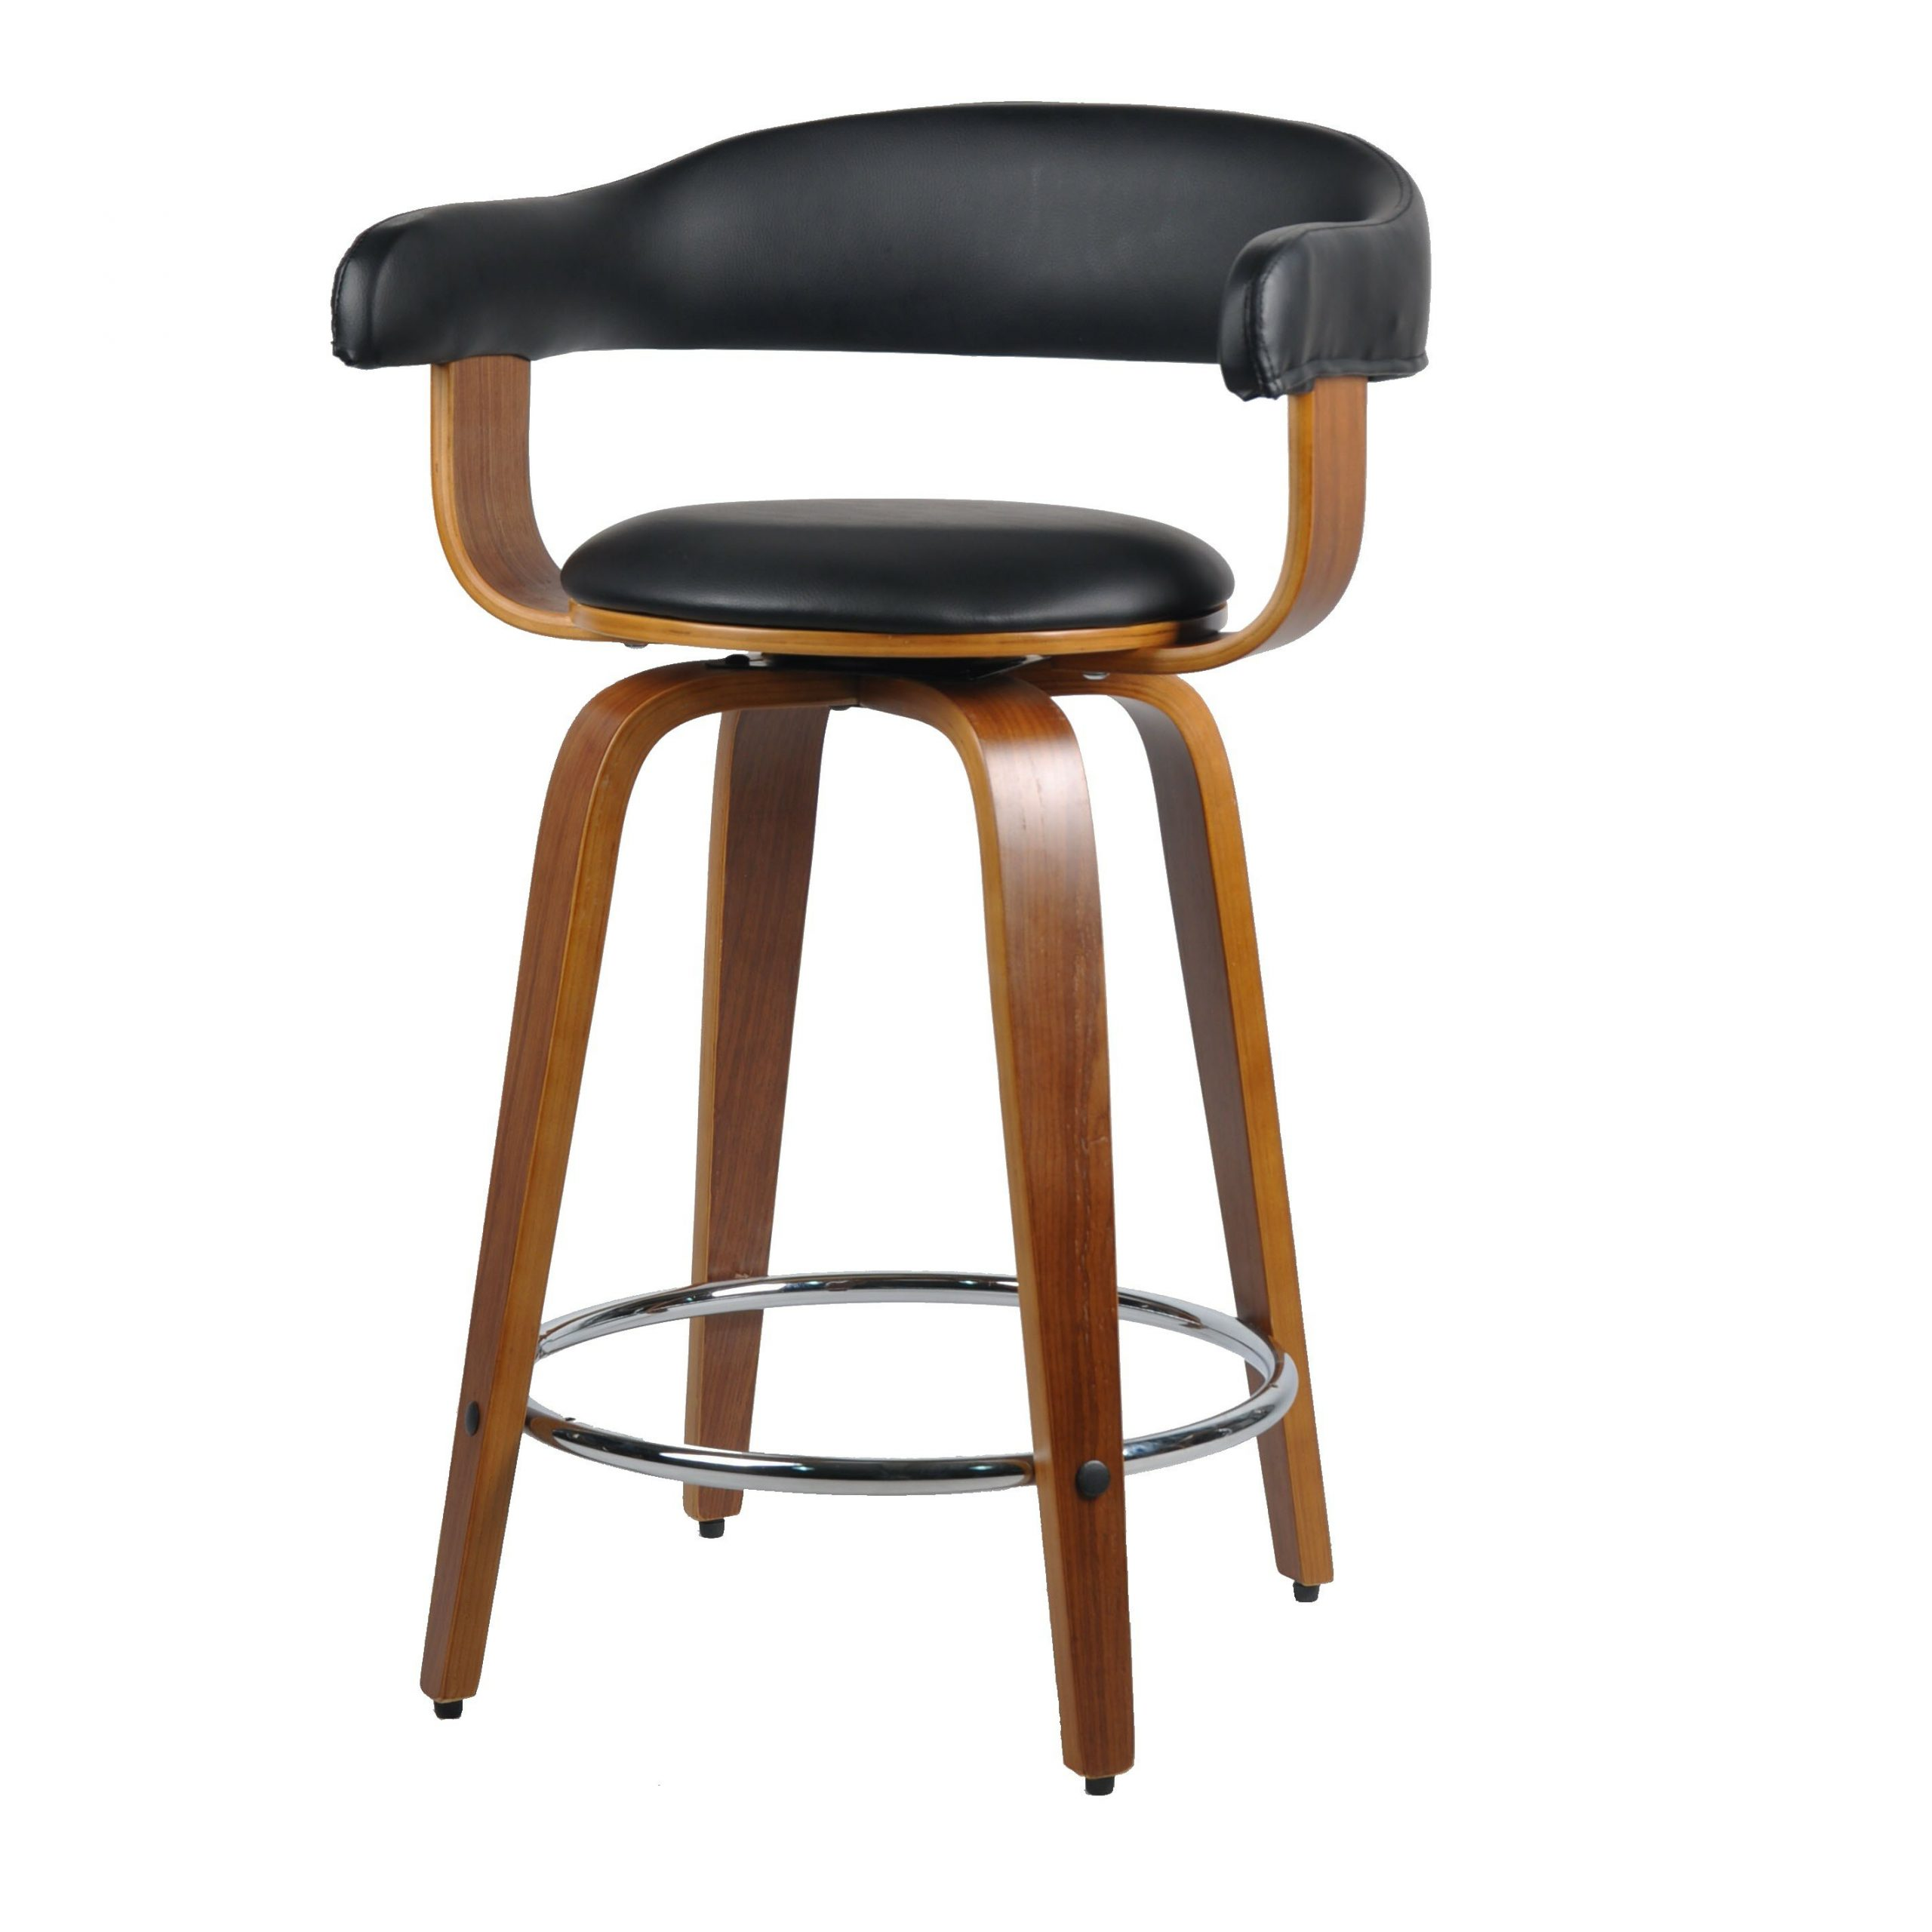 Dansby 61cm Swivel Bar Stool With Regard To Fashionable Ansby Barrel Chairs (View 8 of 20)